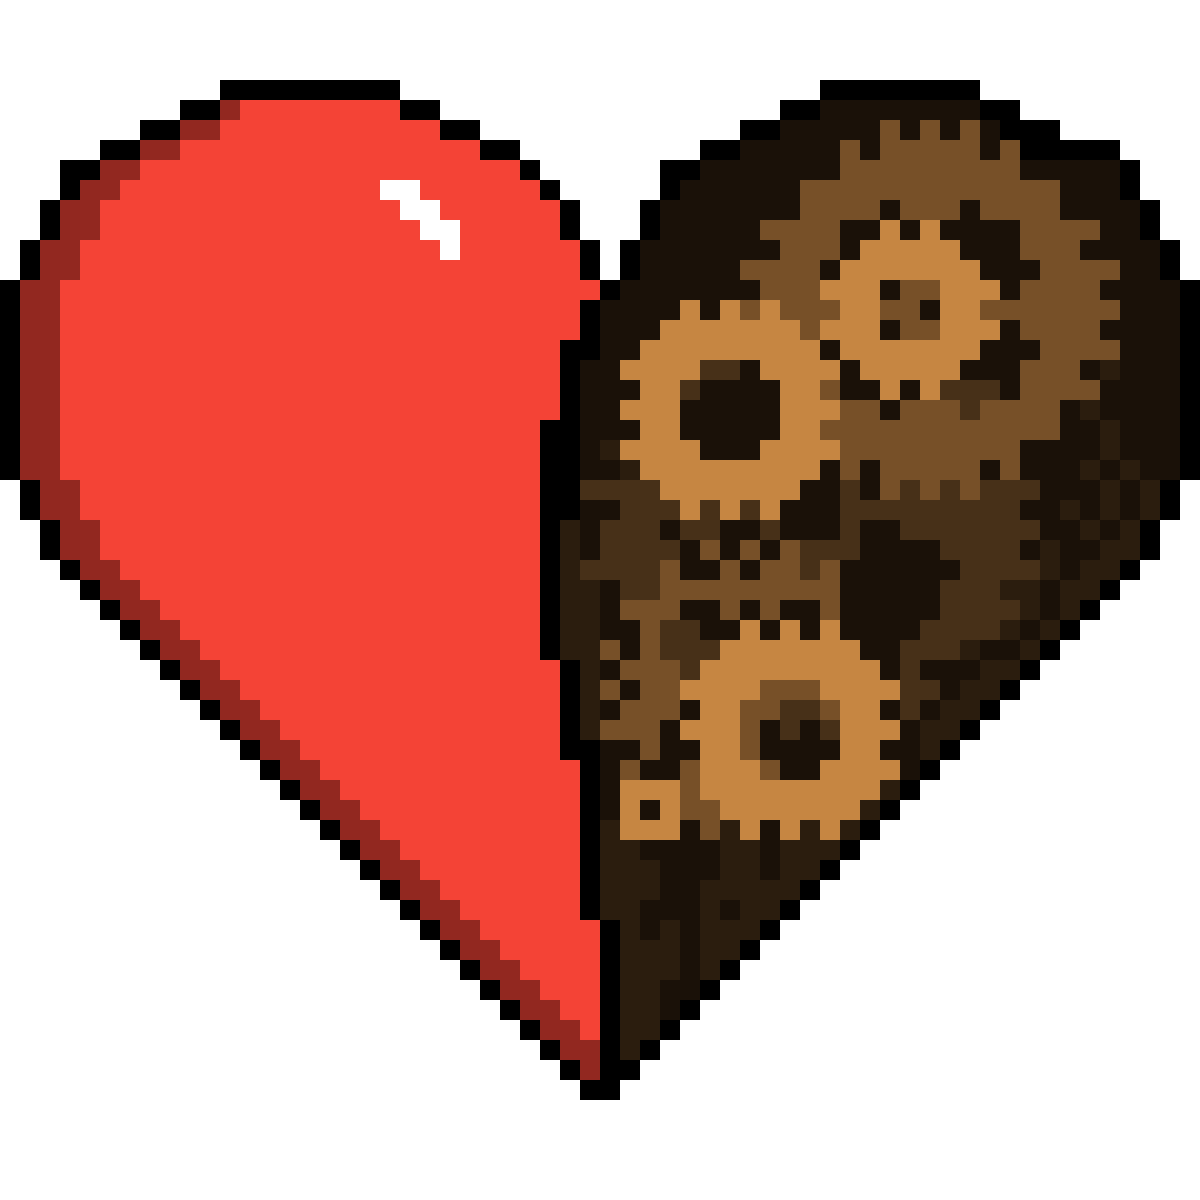 Real heart png. Pixilart vs mechanical by